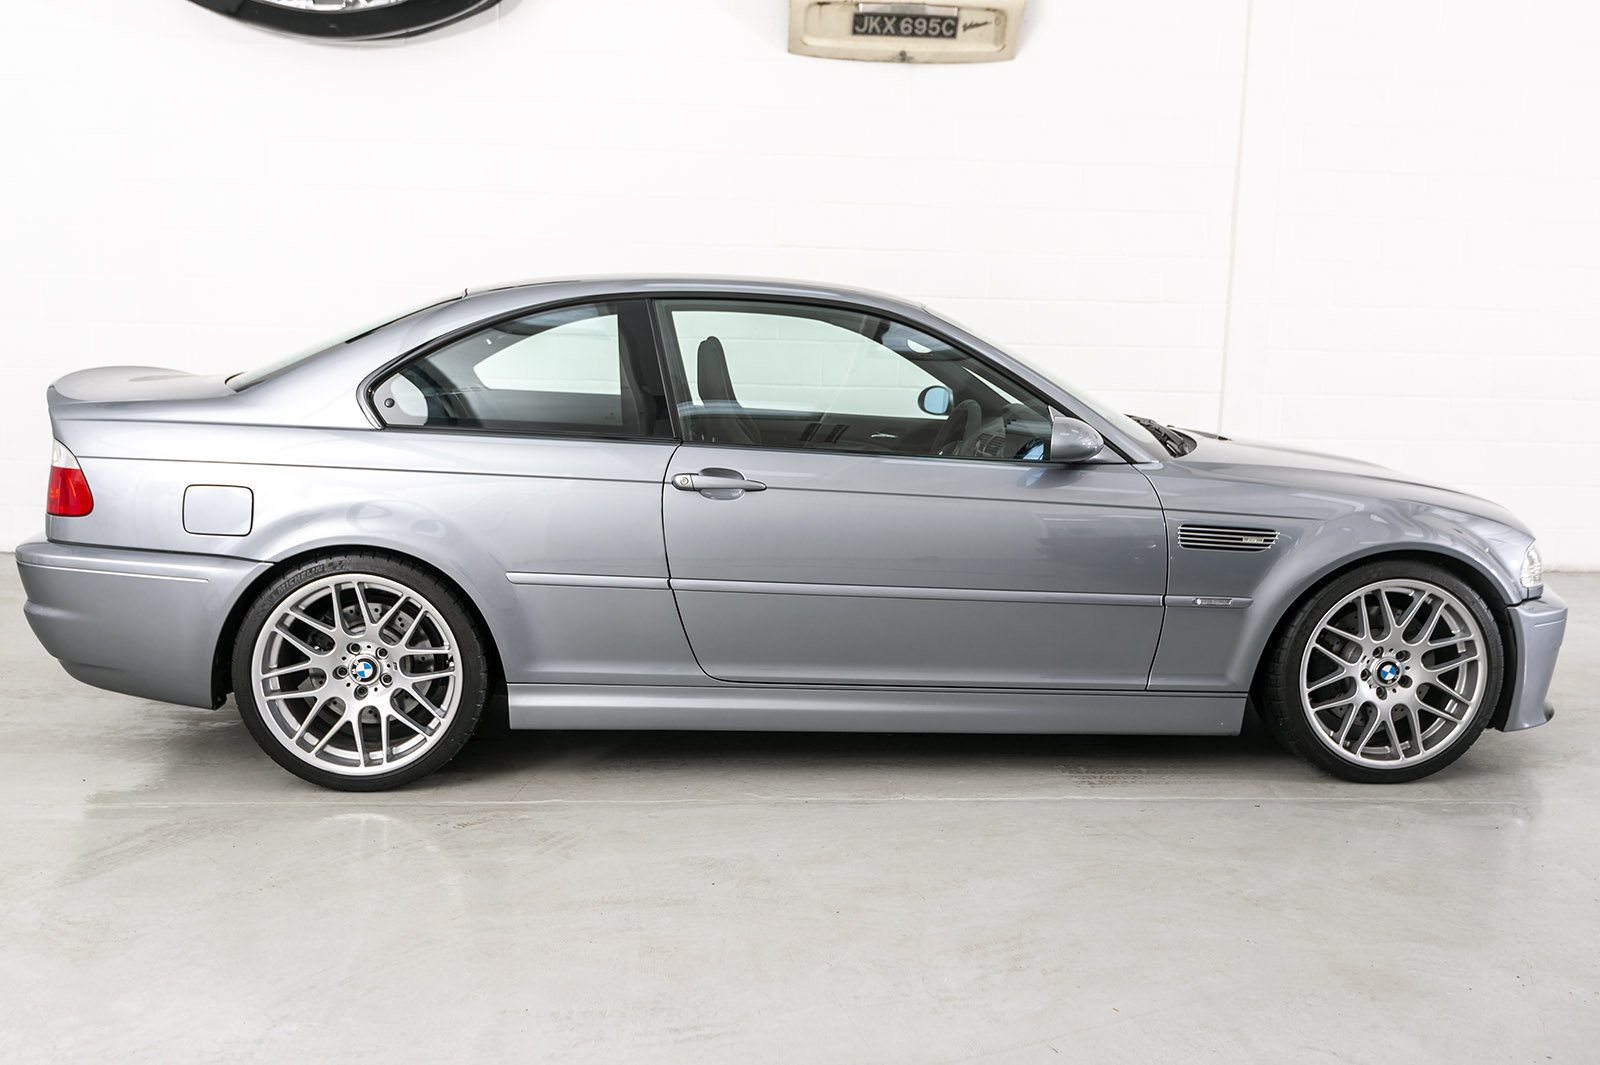 2003 BMW M3 E46 CSL For Sale (picture 1 of 6)